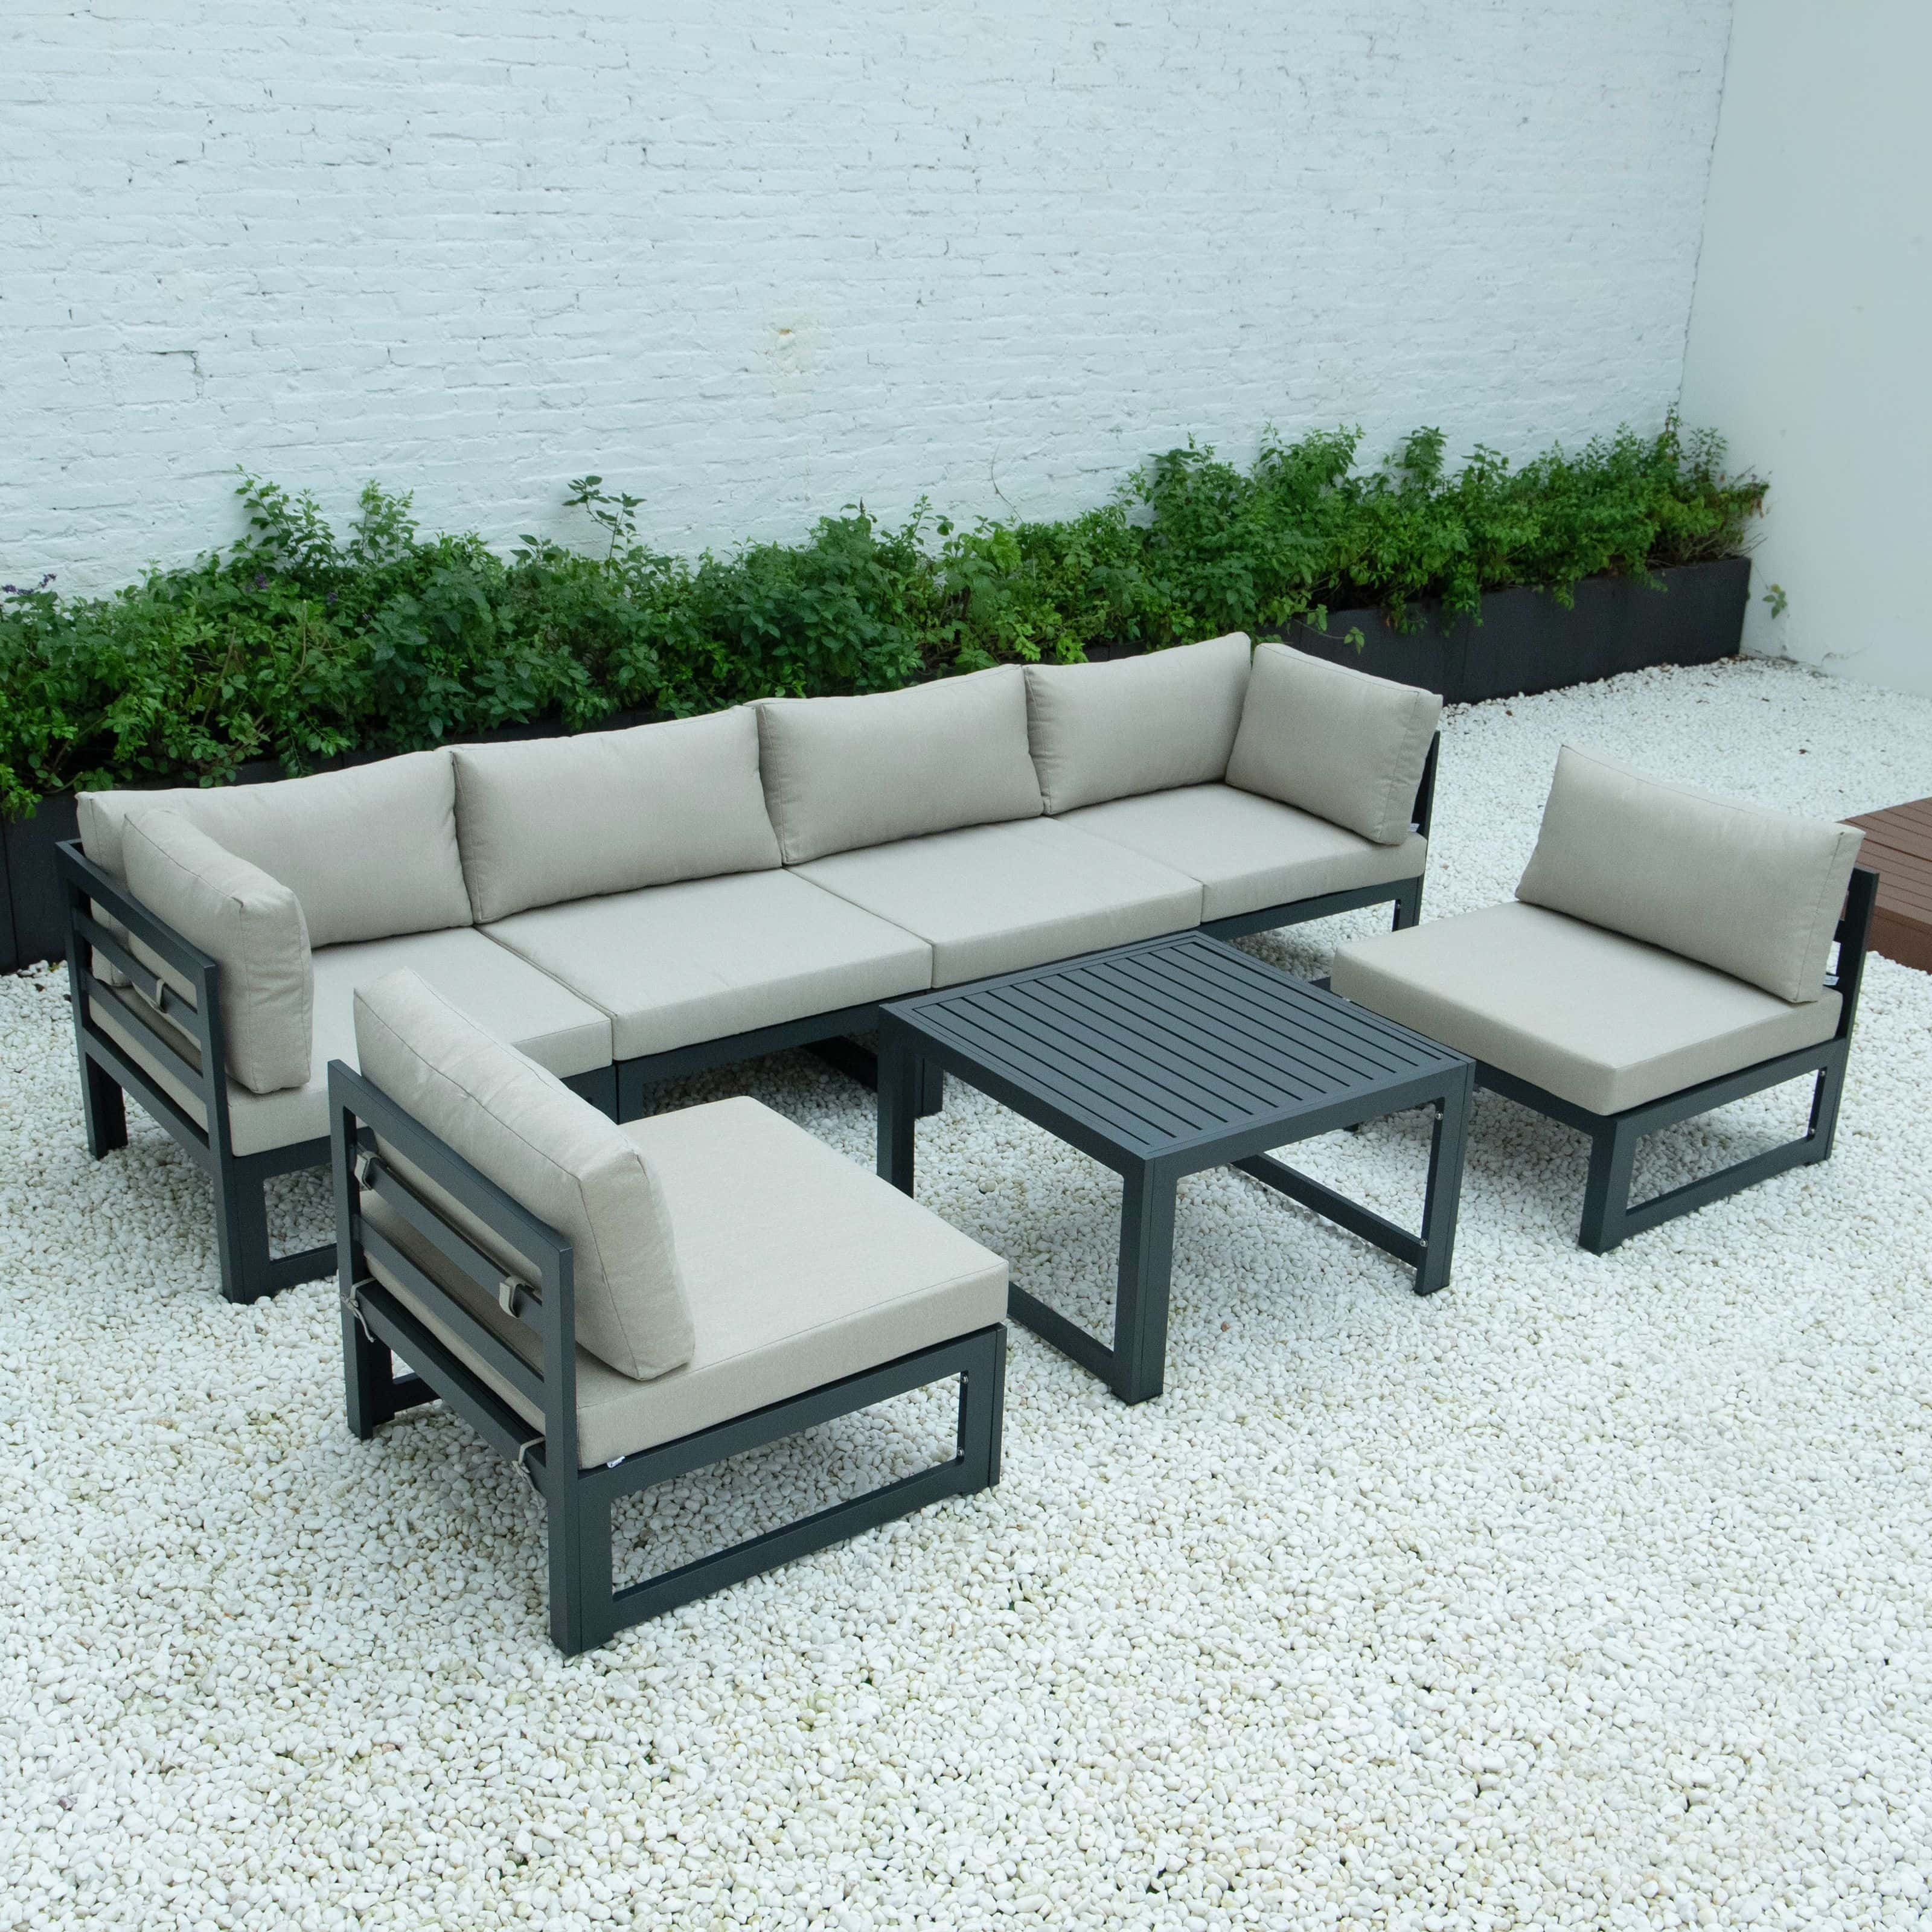 chelsea 7 piece patio sectional and coffee table set black aluminum with cushions beige by leisuremod